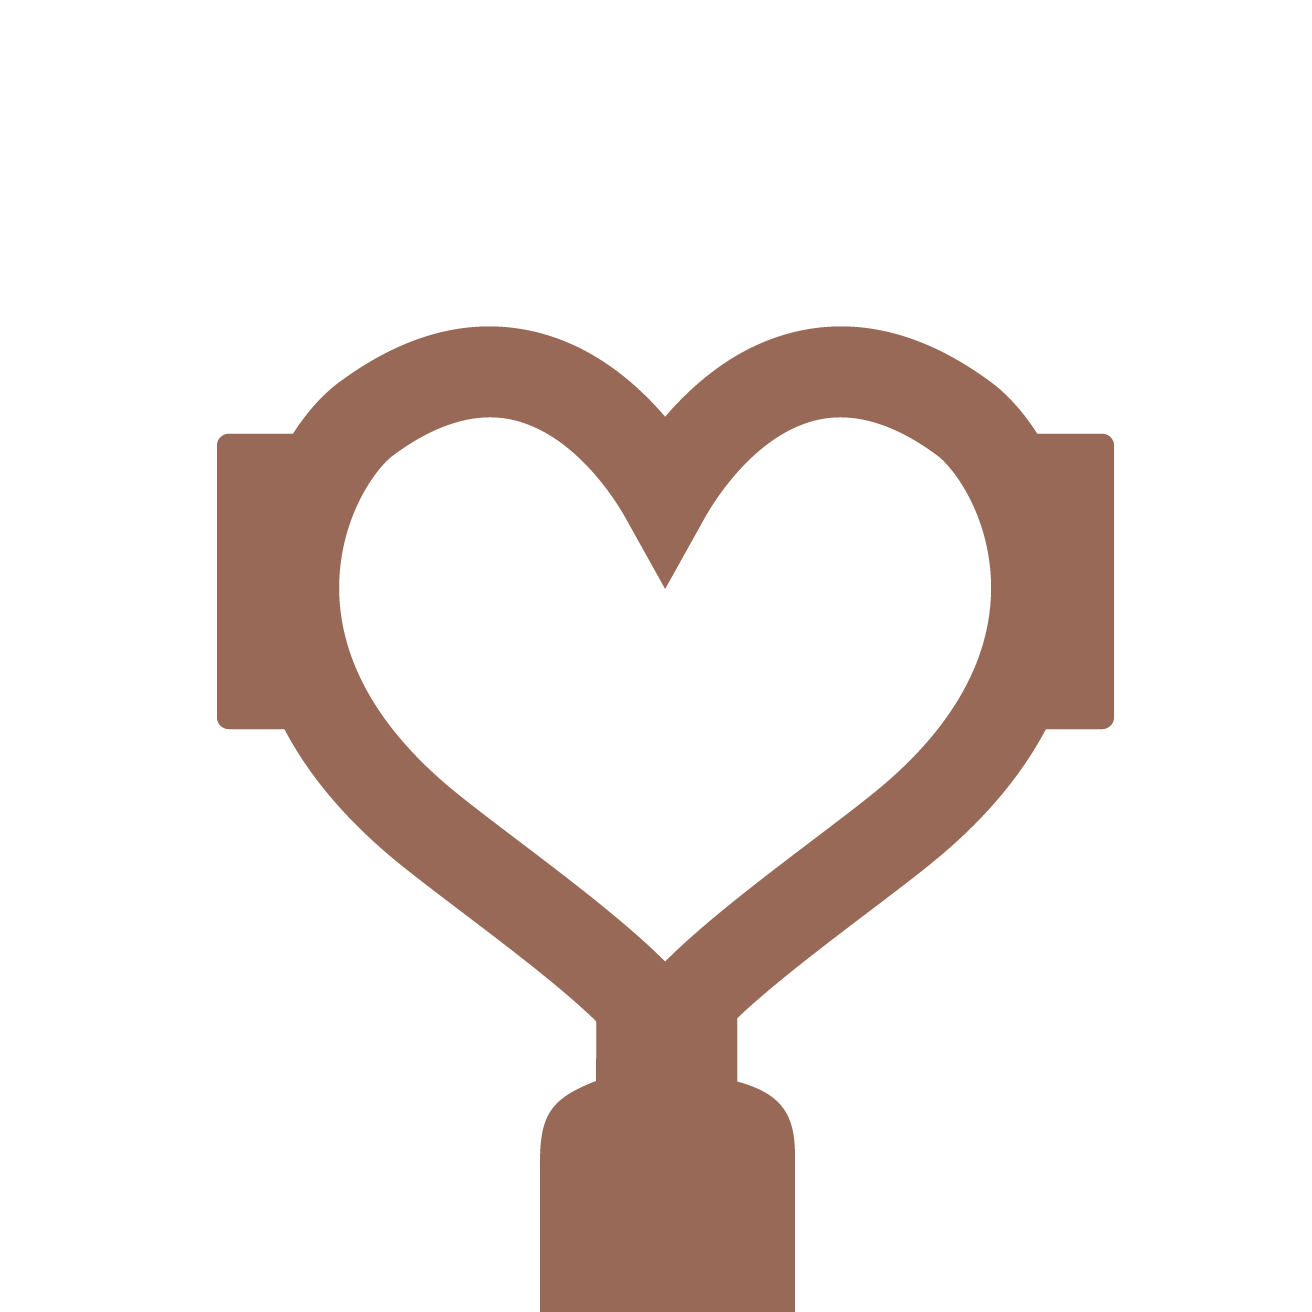 Moccamaster Technivorm KBG741 SELECT - Stone Grey, with FREE 250g bag of Coffee